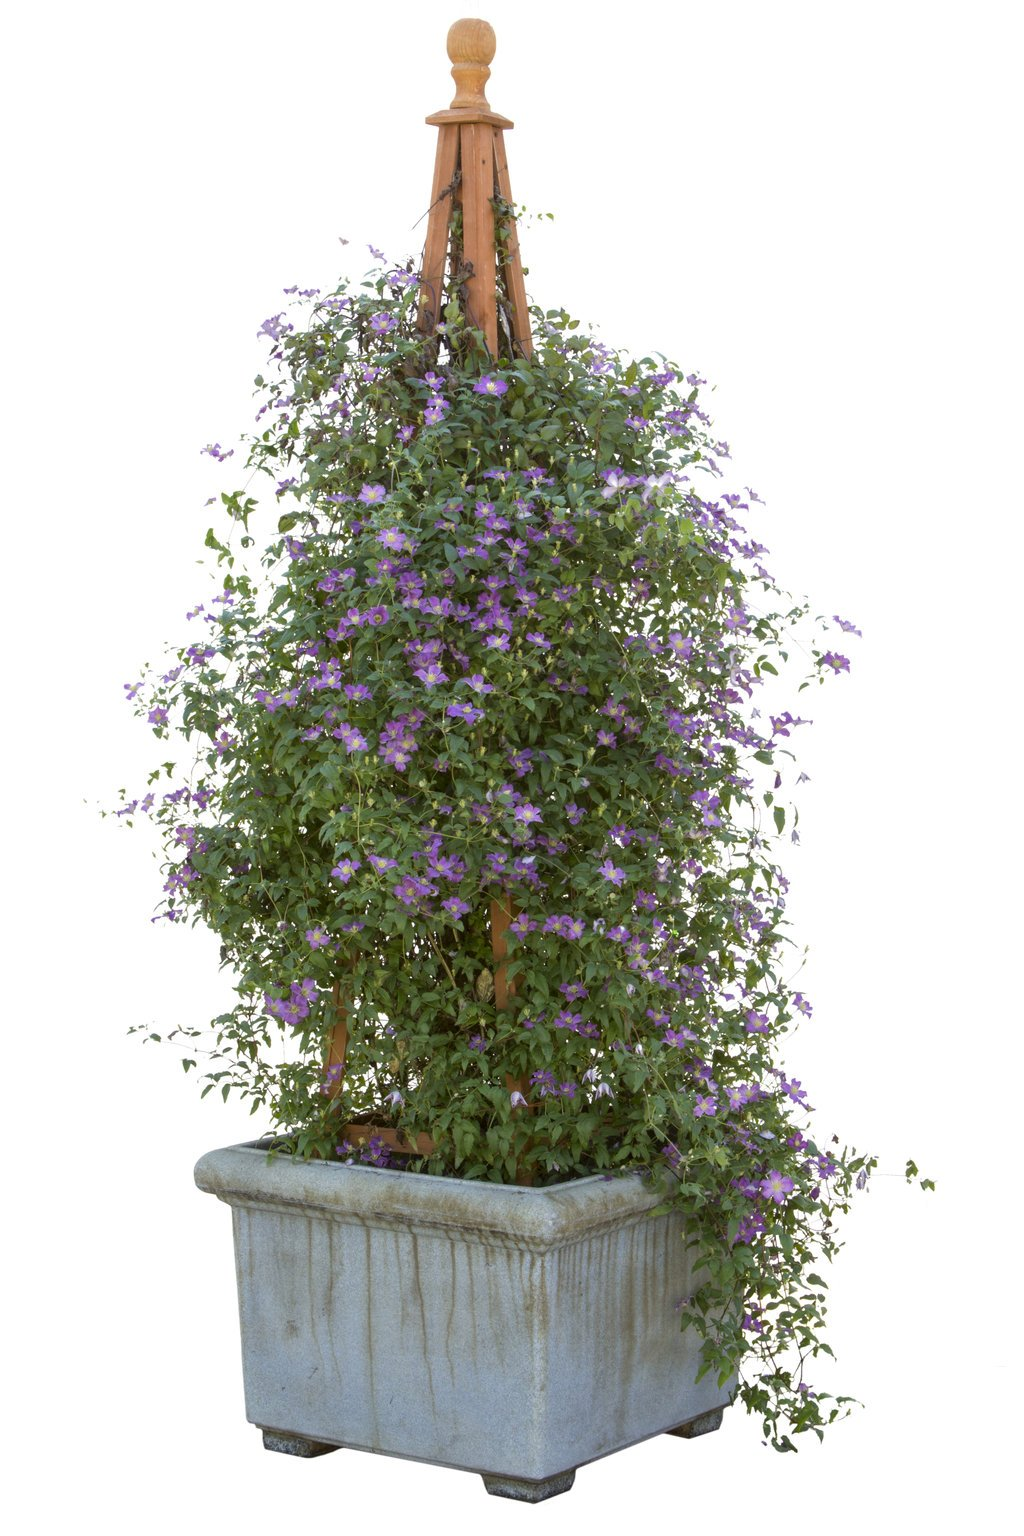 Happy Jack Purple (Clematis) Live Shrub, Purple Flowers,1 Gallon by Proven Winners (Image #7)